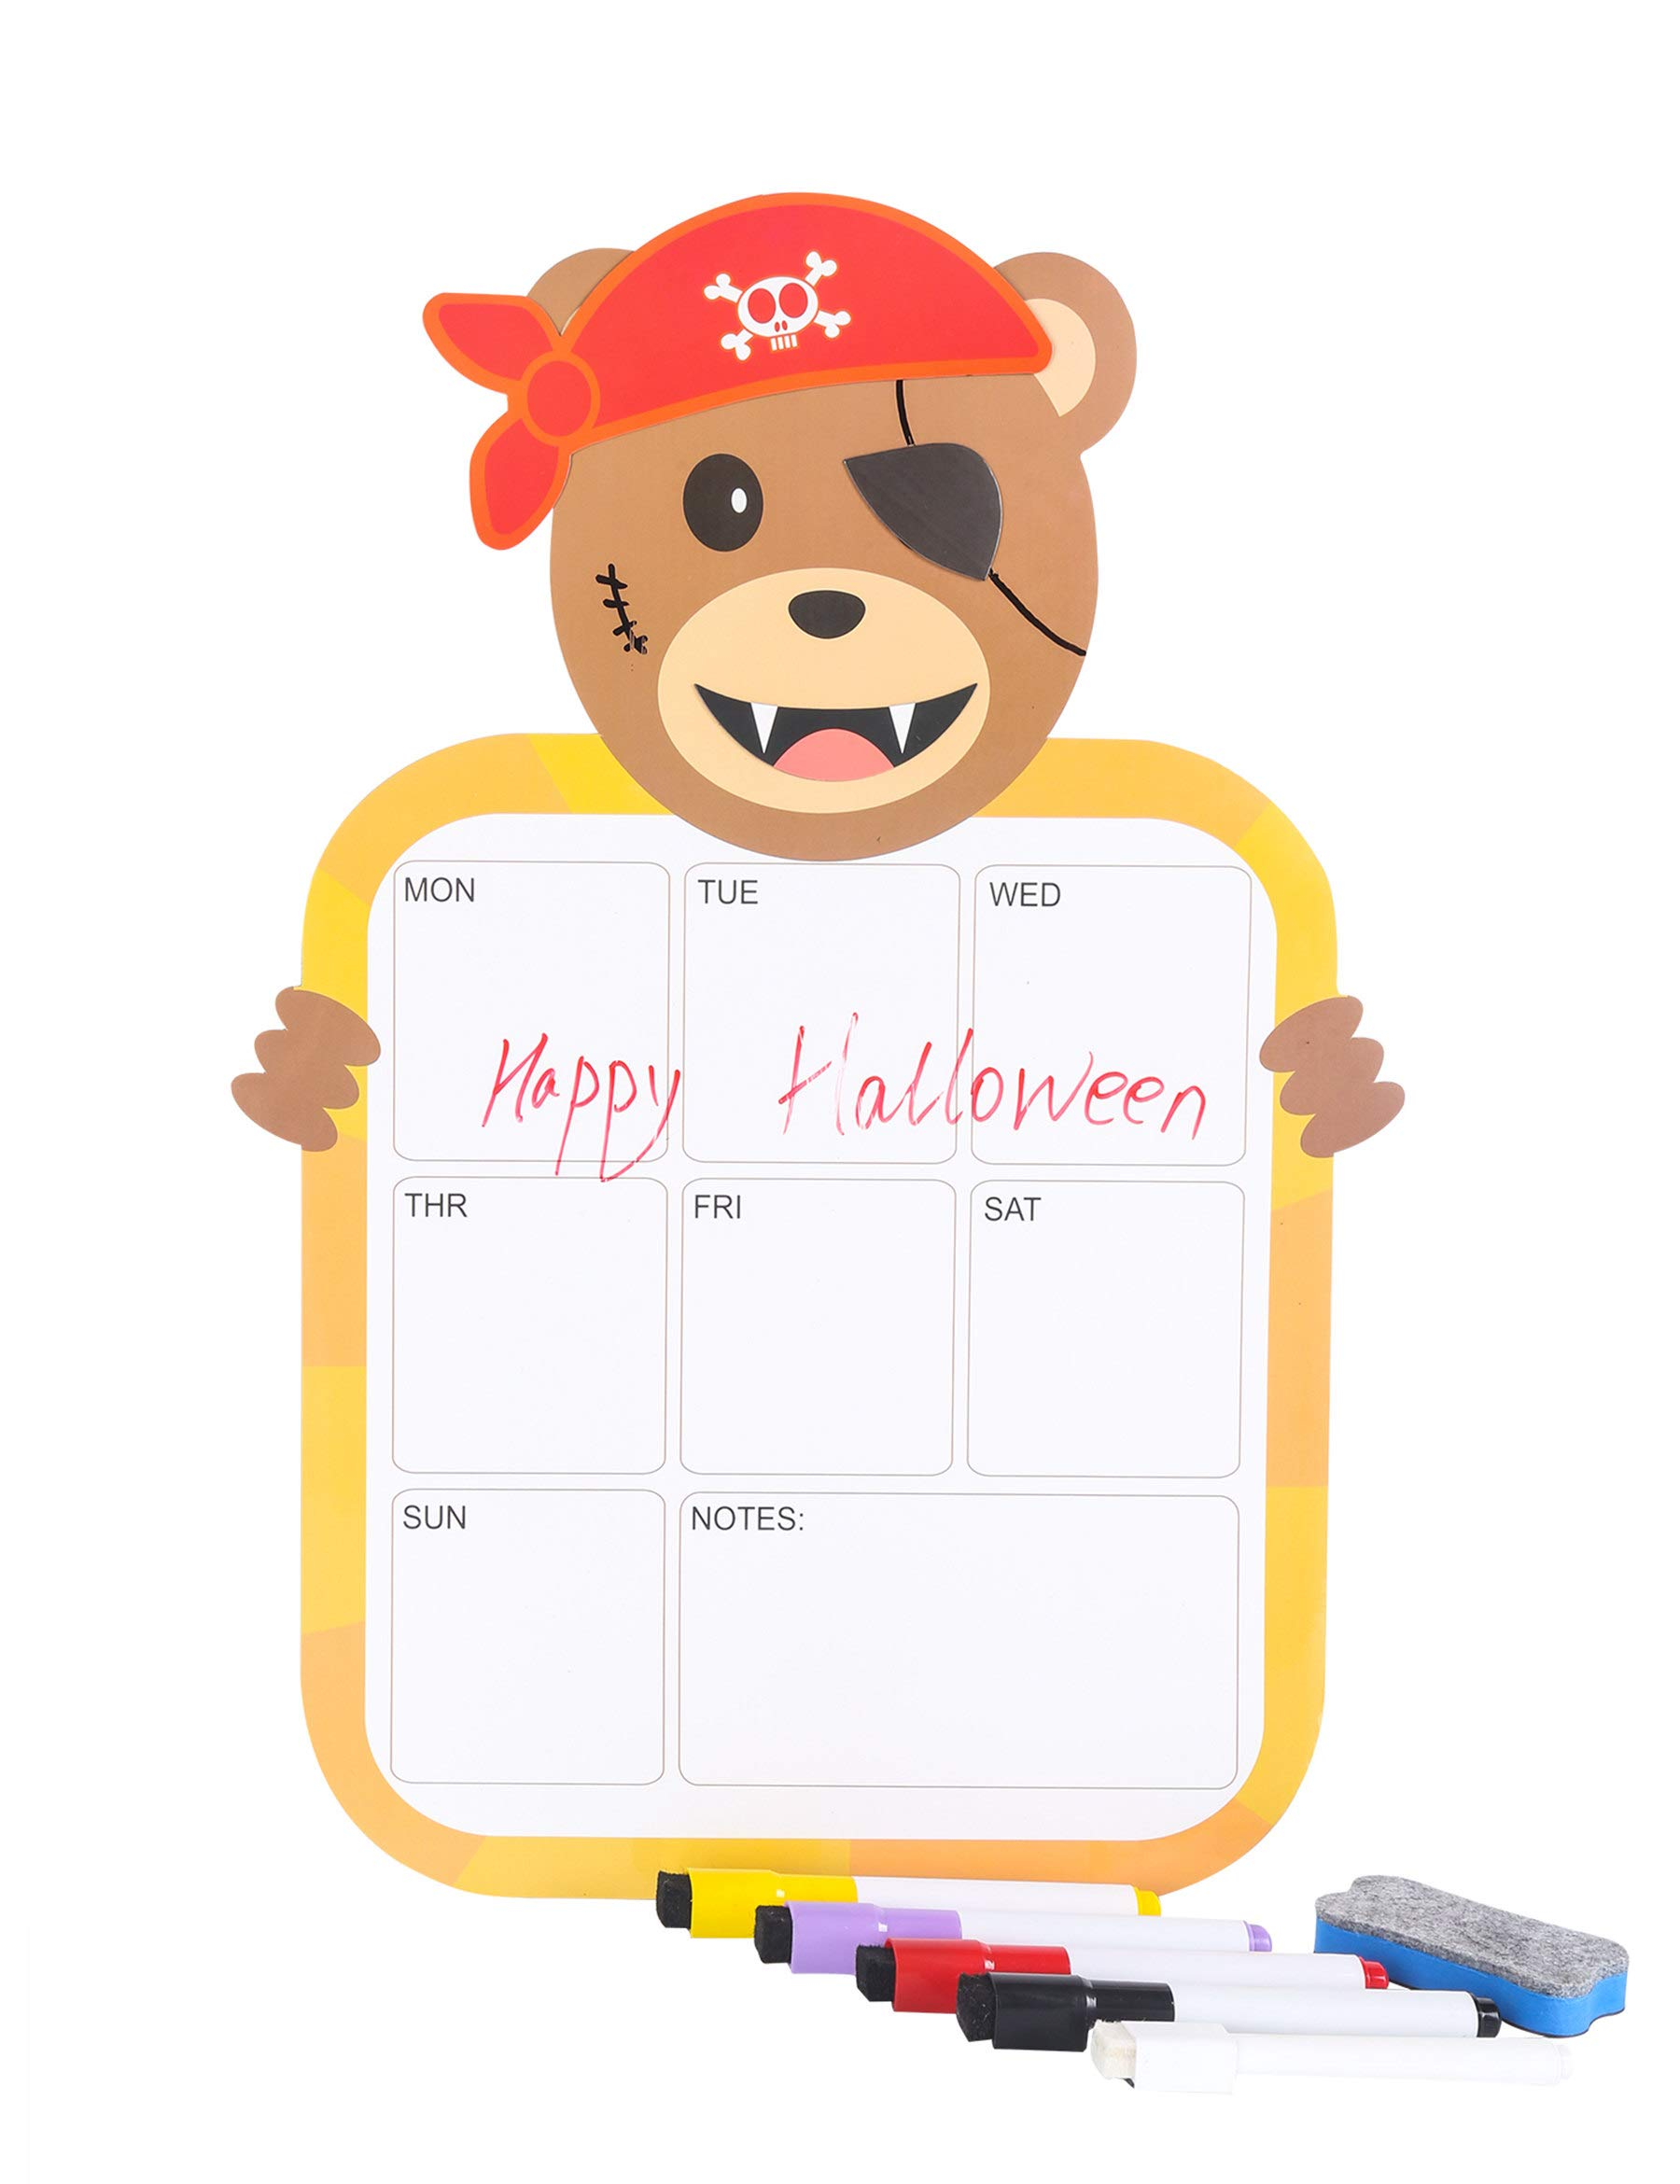 Magnetic Weekly Dry Erase Calendar Smart Planner Board for Kitchen Refrigerator Decoration with Halloween Cosplay Element,Christmas Cosplay Element,DIY Eye,to do List,5 Markers(Papa Bear)